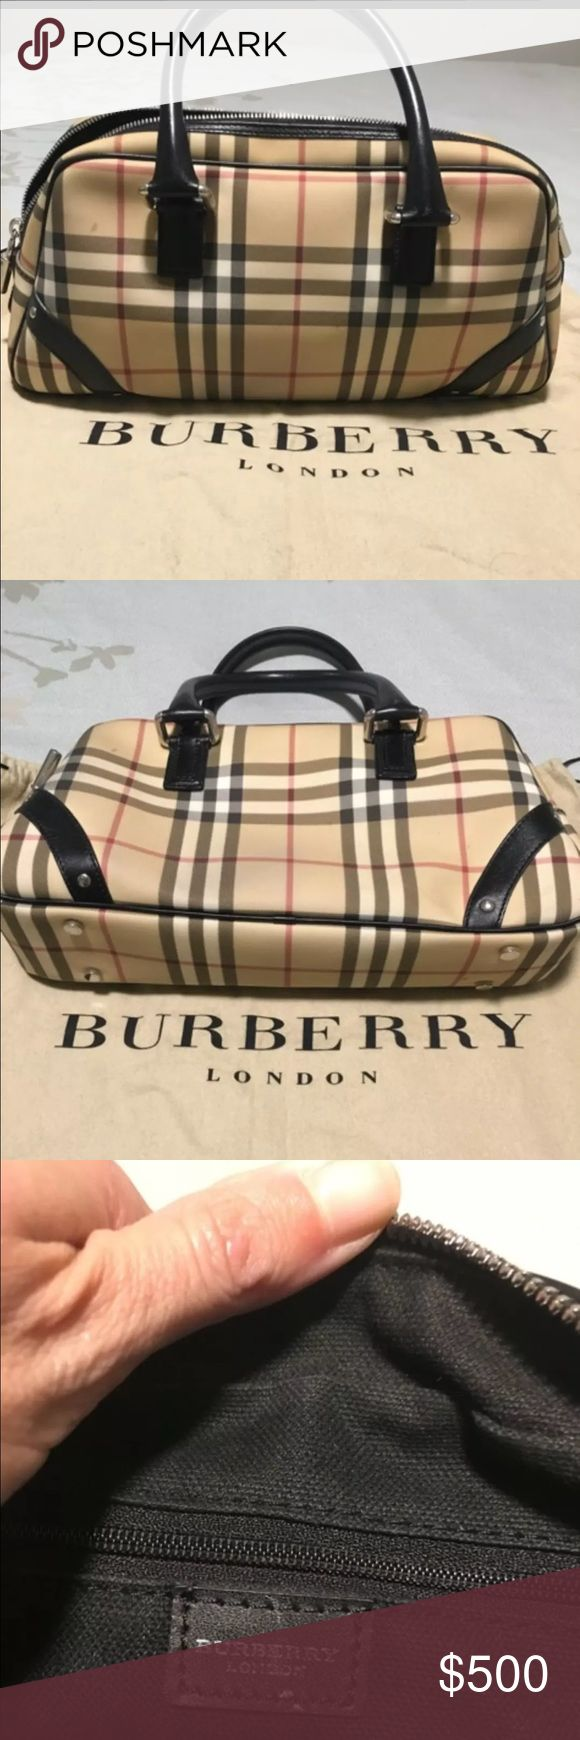 100% Authentic Burberry handbag Burberry bag. Gently used (only a few times). Zipper is still tight as it hasn't been used much. Has one small blemish that may be able to be removed. Purchased at Nordstrom full price. Burberry Bags Satchels